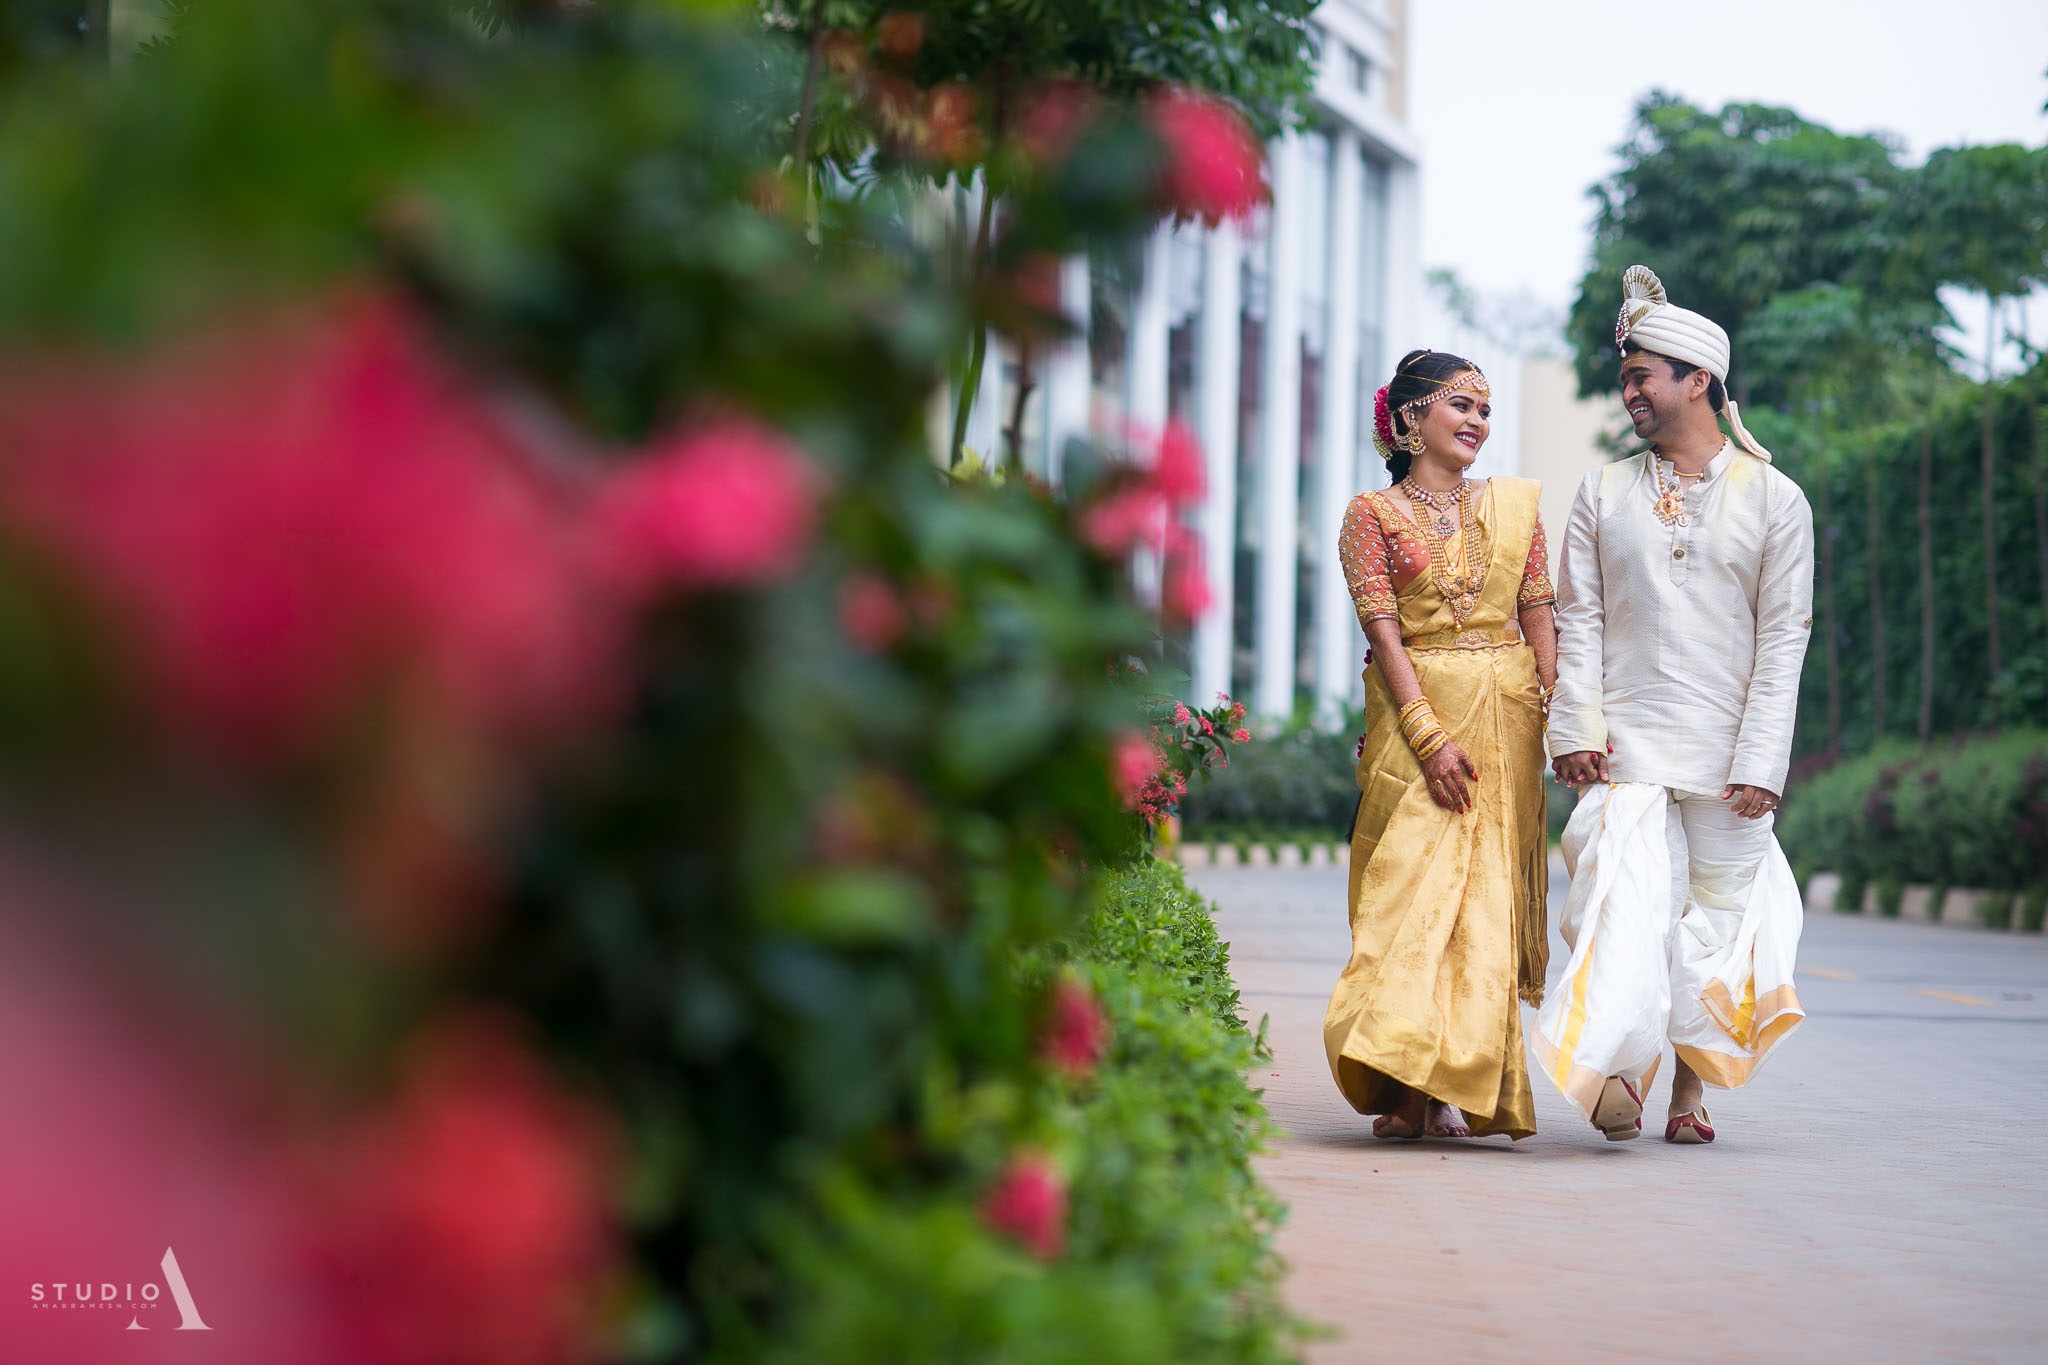 Destination-wedding-photographer-chennai-31